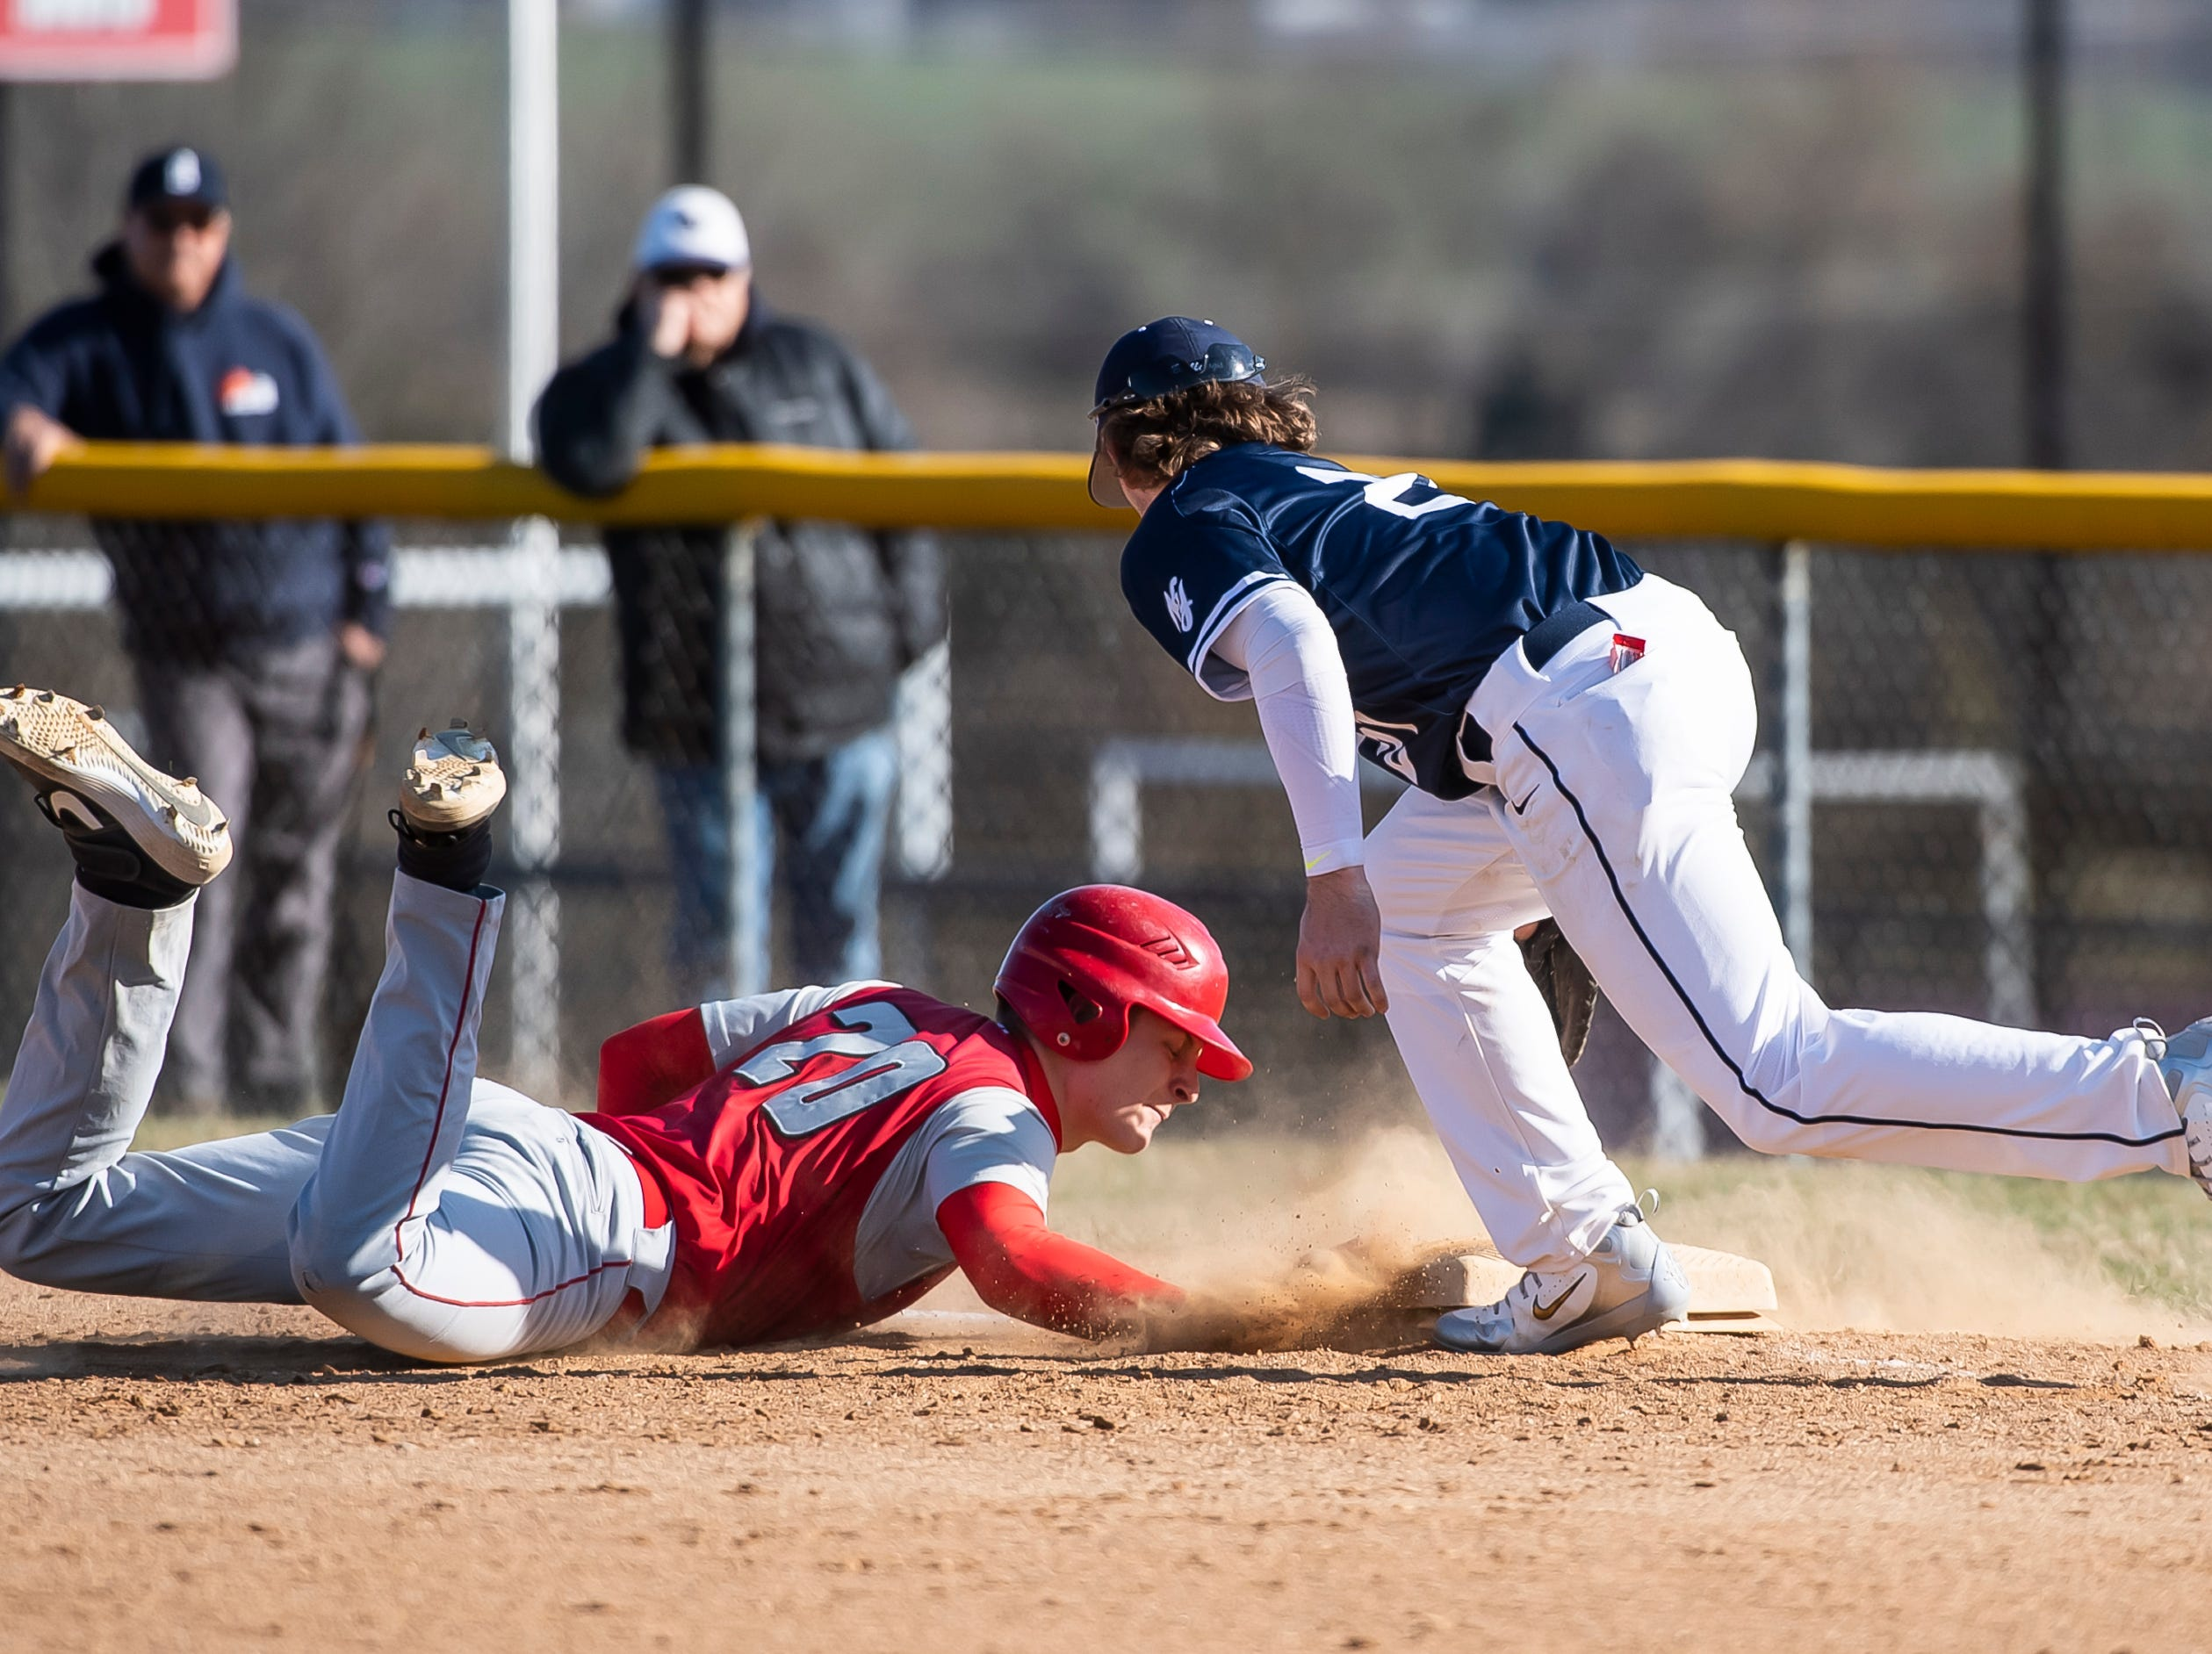 Bermudian Springs' Tyler Reinert gets back to first base safely during a pickoff attempt in a YAIAA baseball game against West York on Wednesday, April 3, 2019. The Eagles fell 14-11.